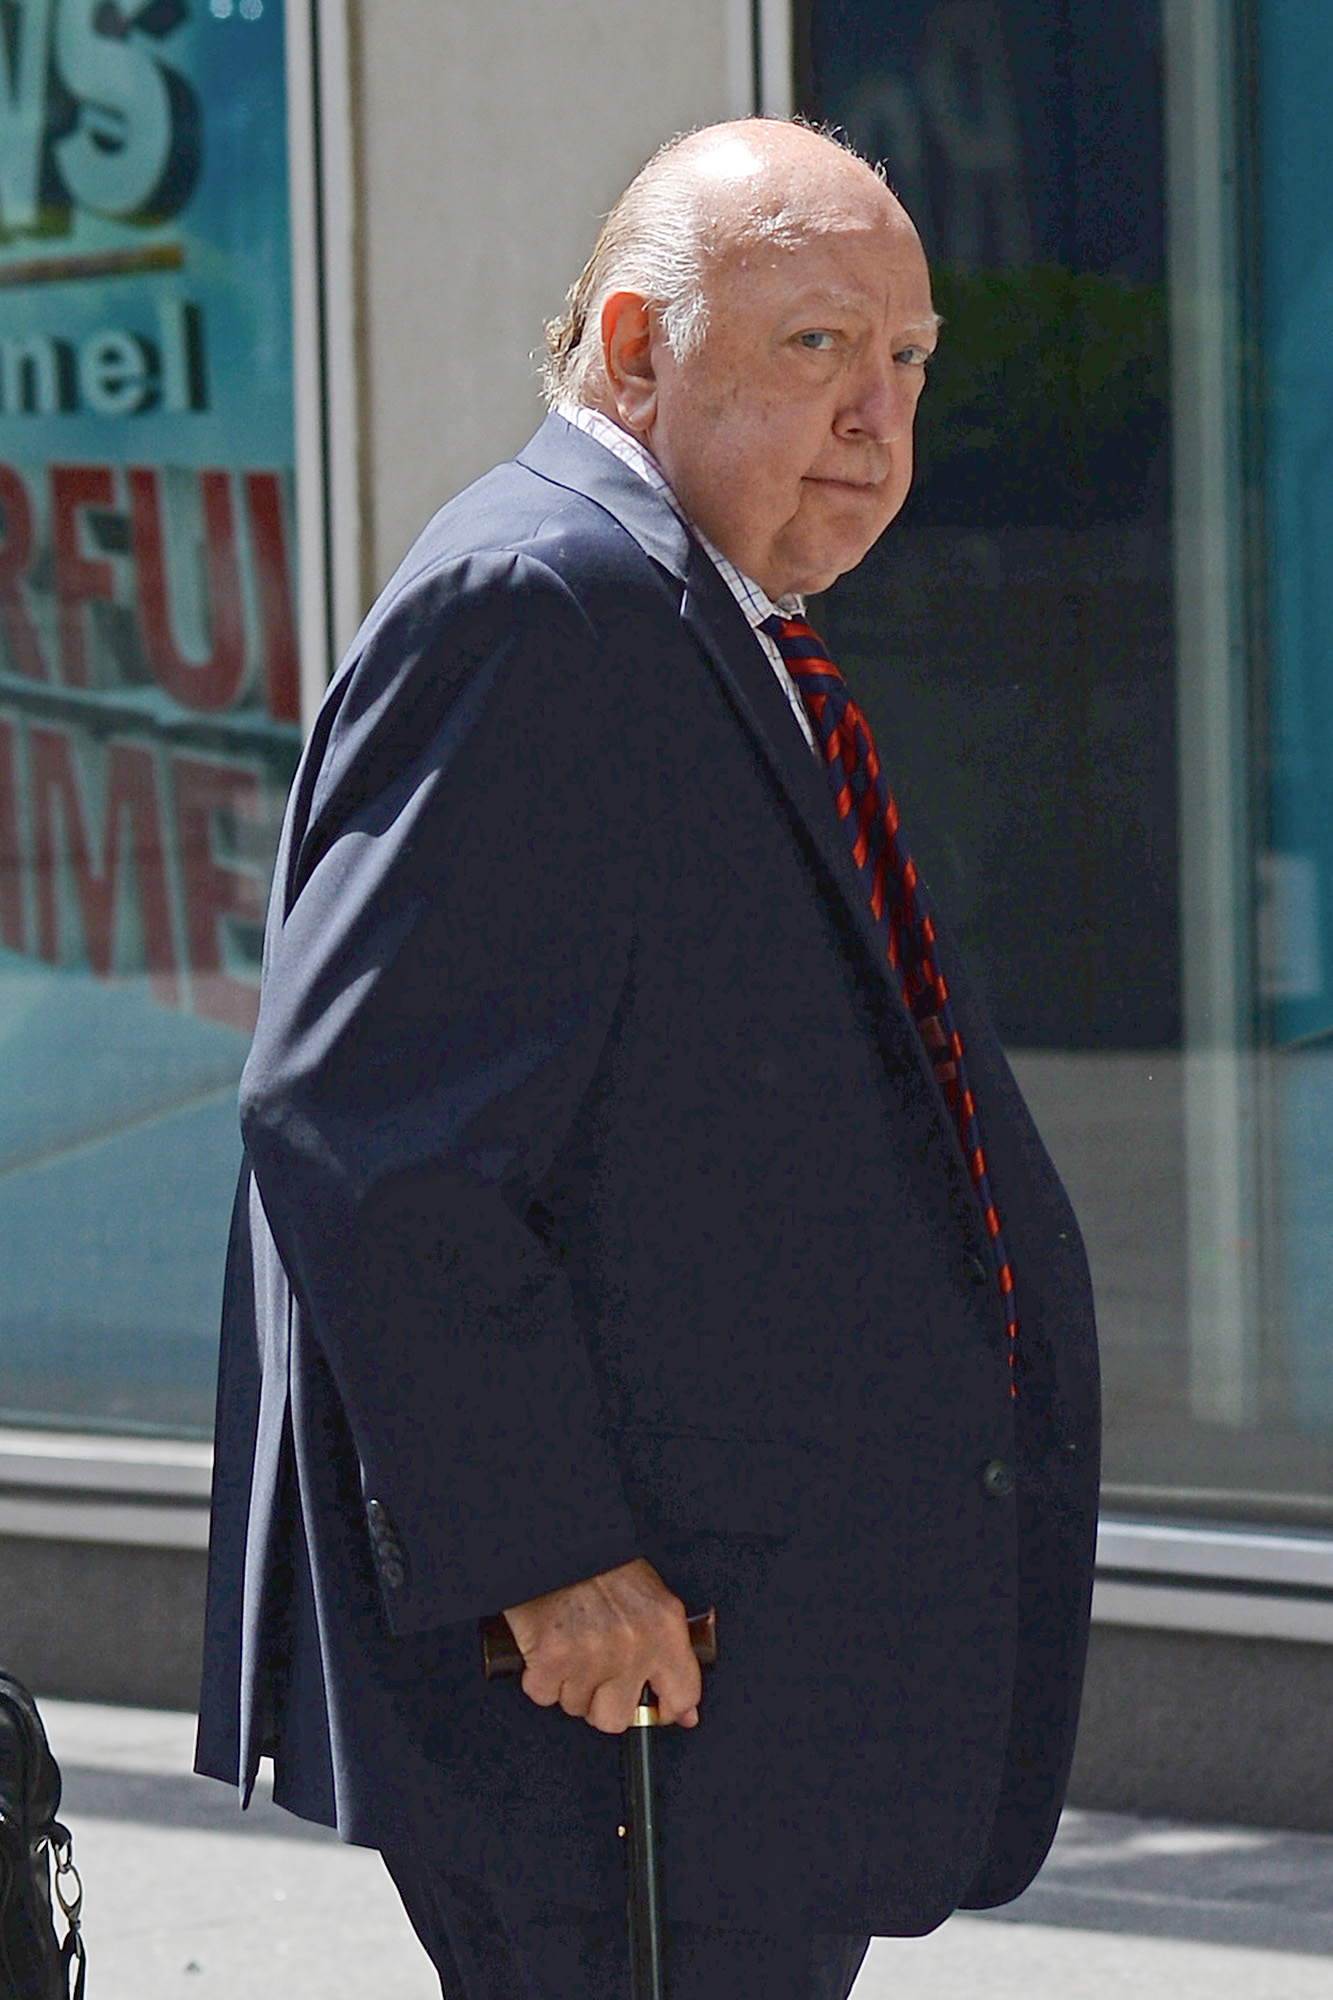 Grab Cut Insert Cut Fox News CEO Roger Ailes Heads To Work Amidst Sexual Harrassment Claims